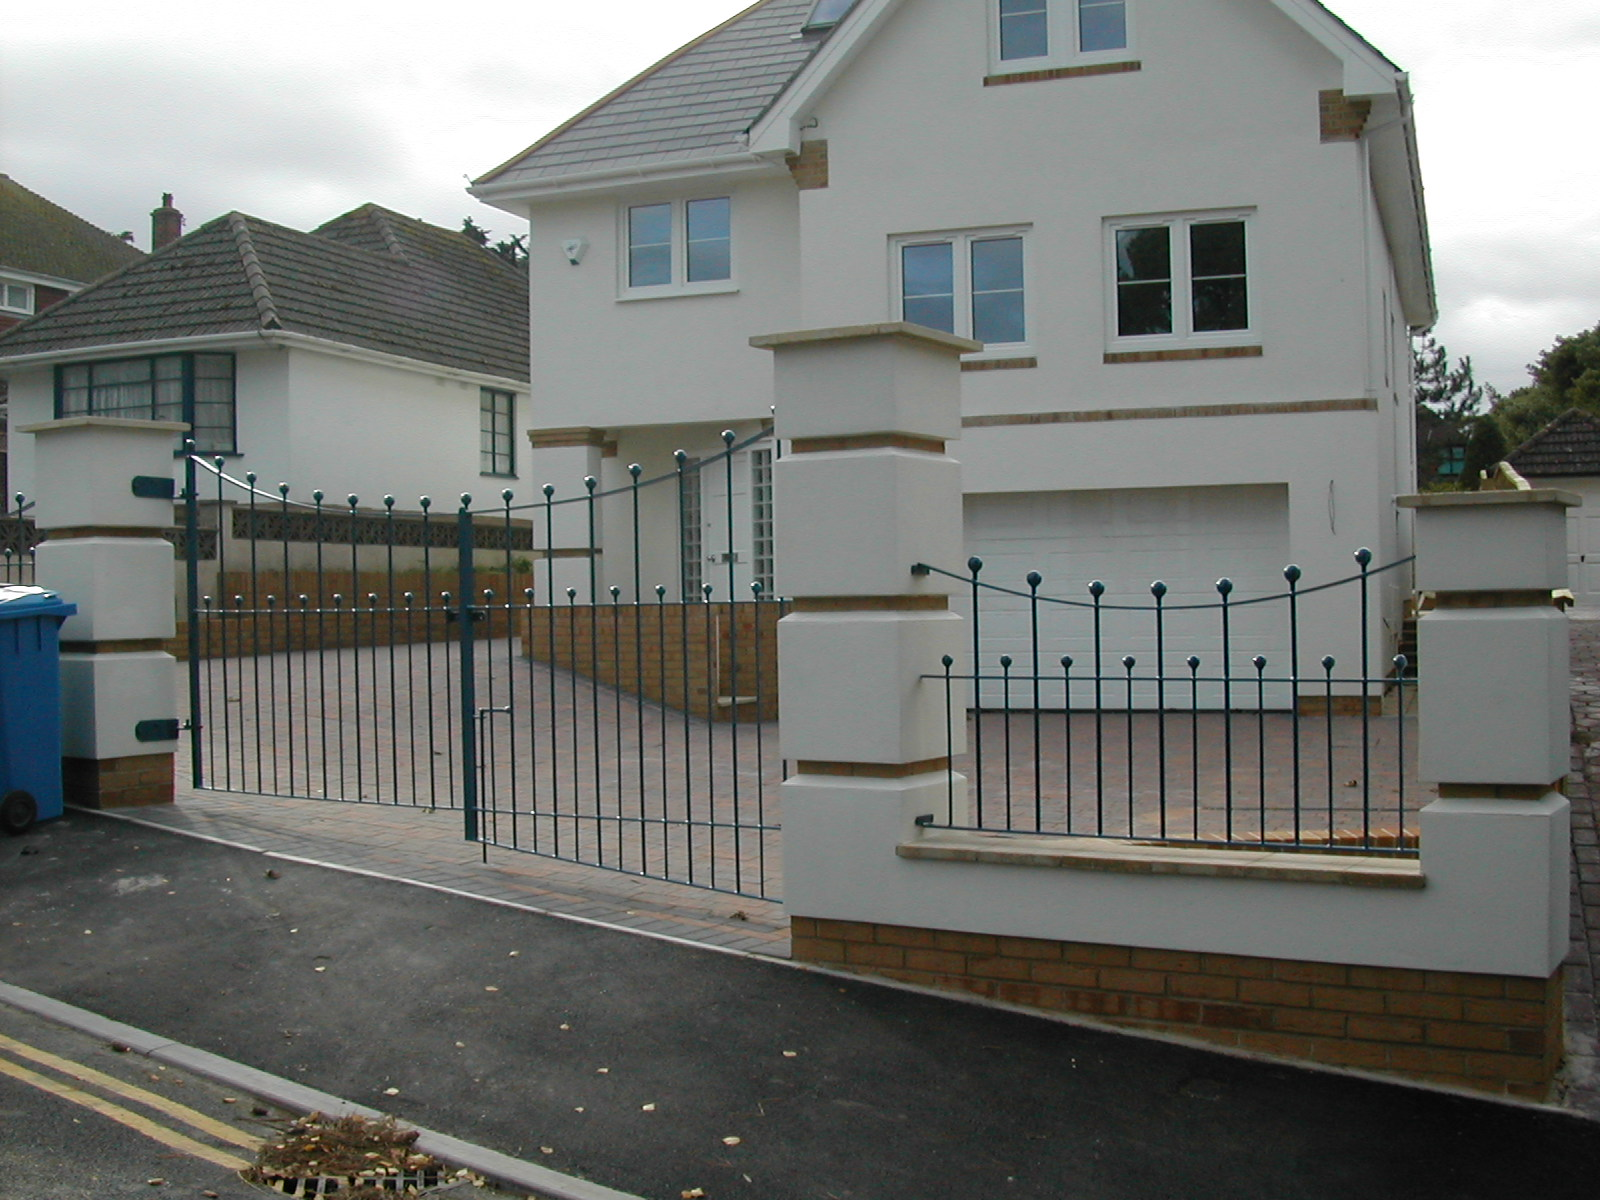 Decorative Gates with Safety 'Ball' Tops